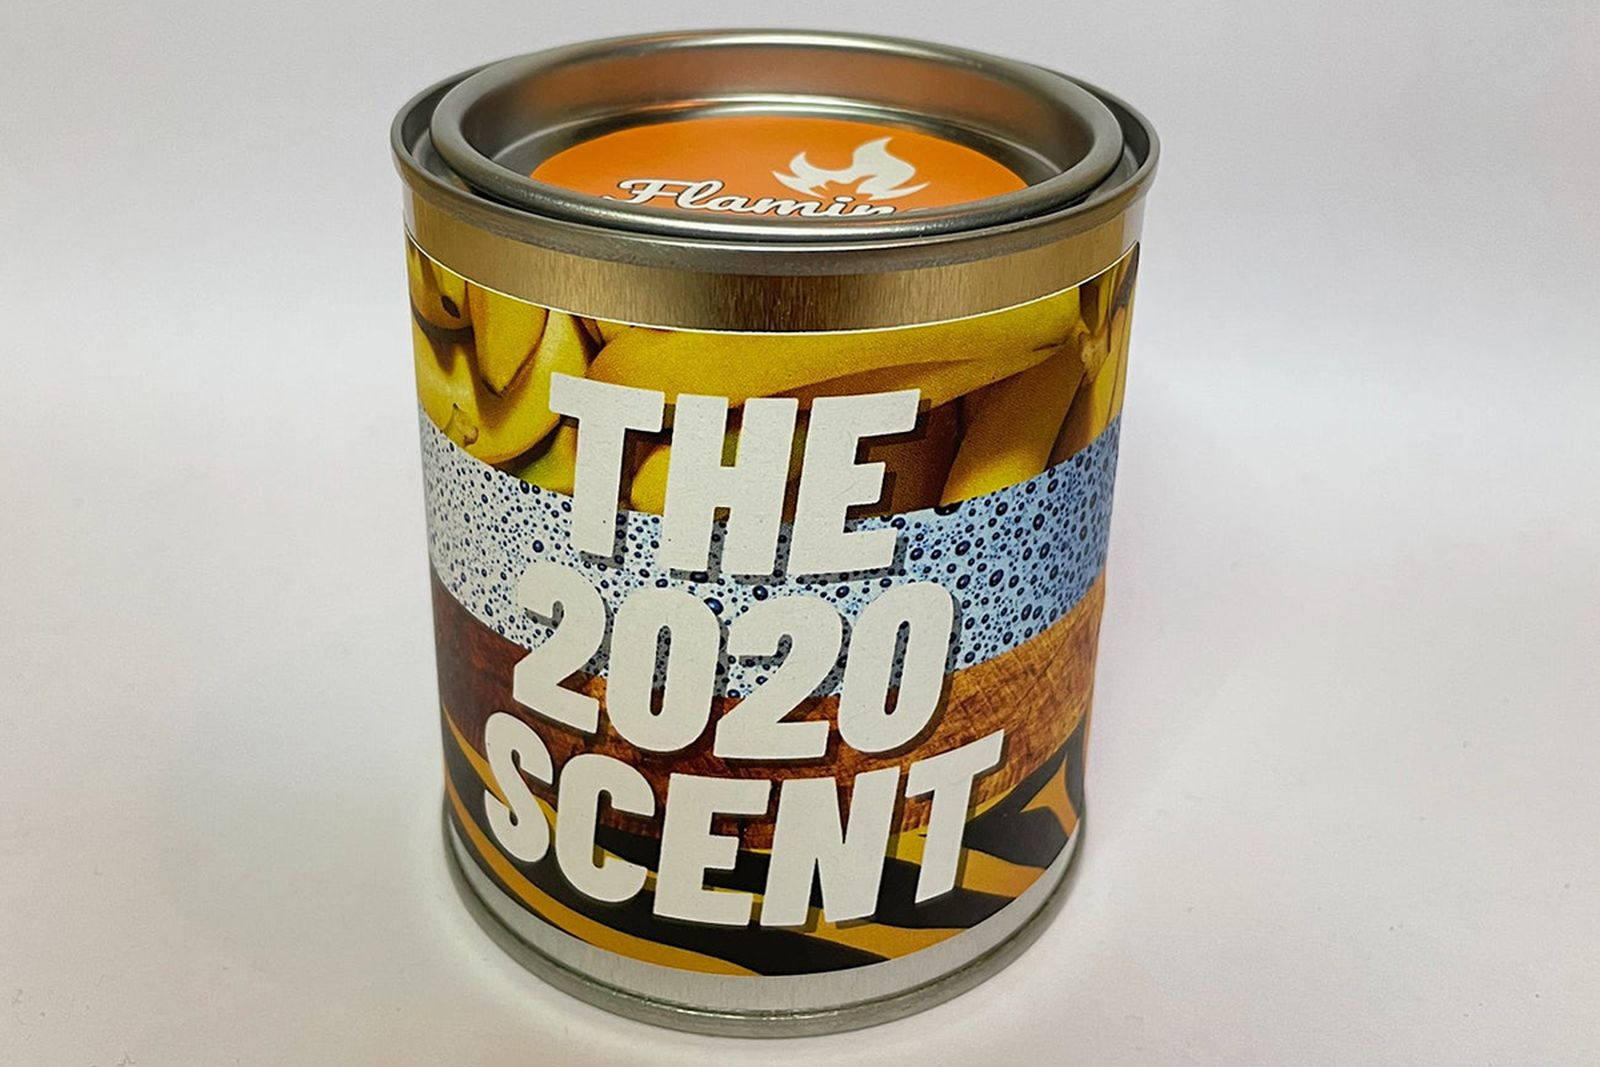 Flaming Crap candle 2020 scent